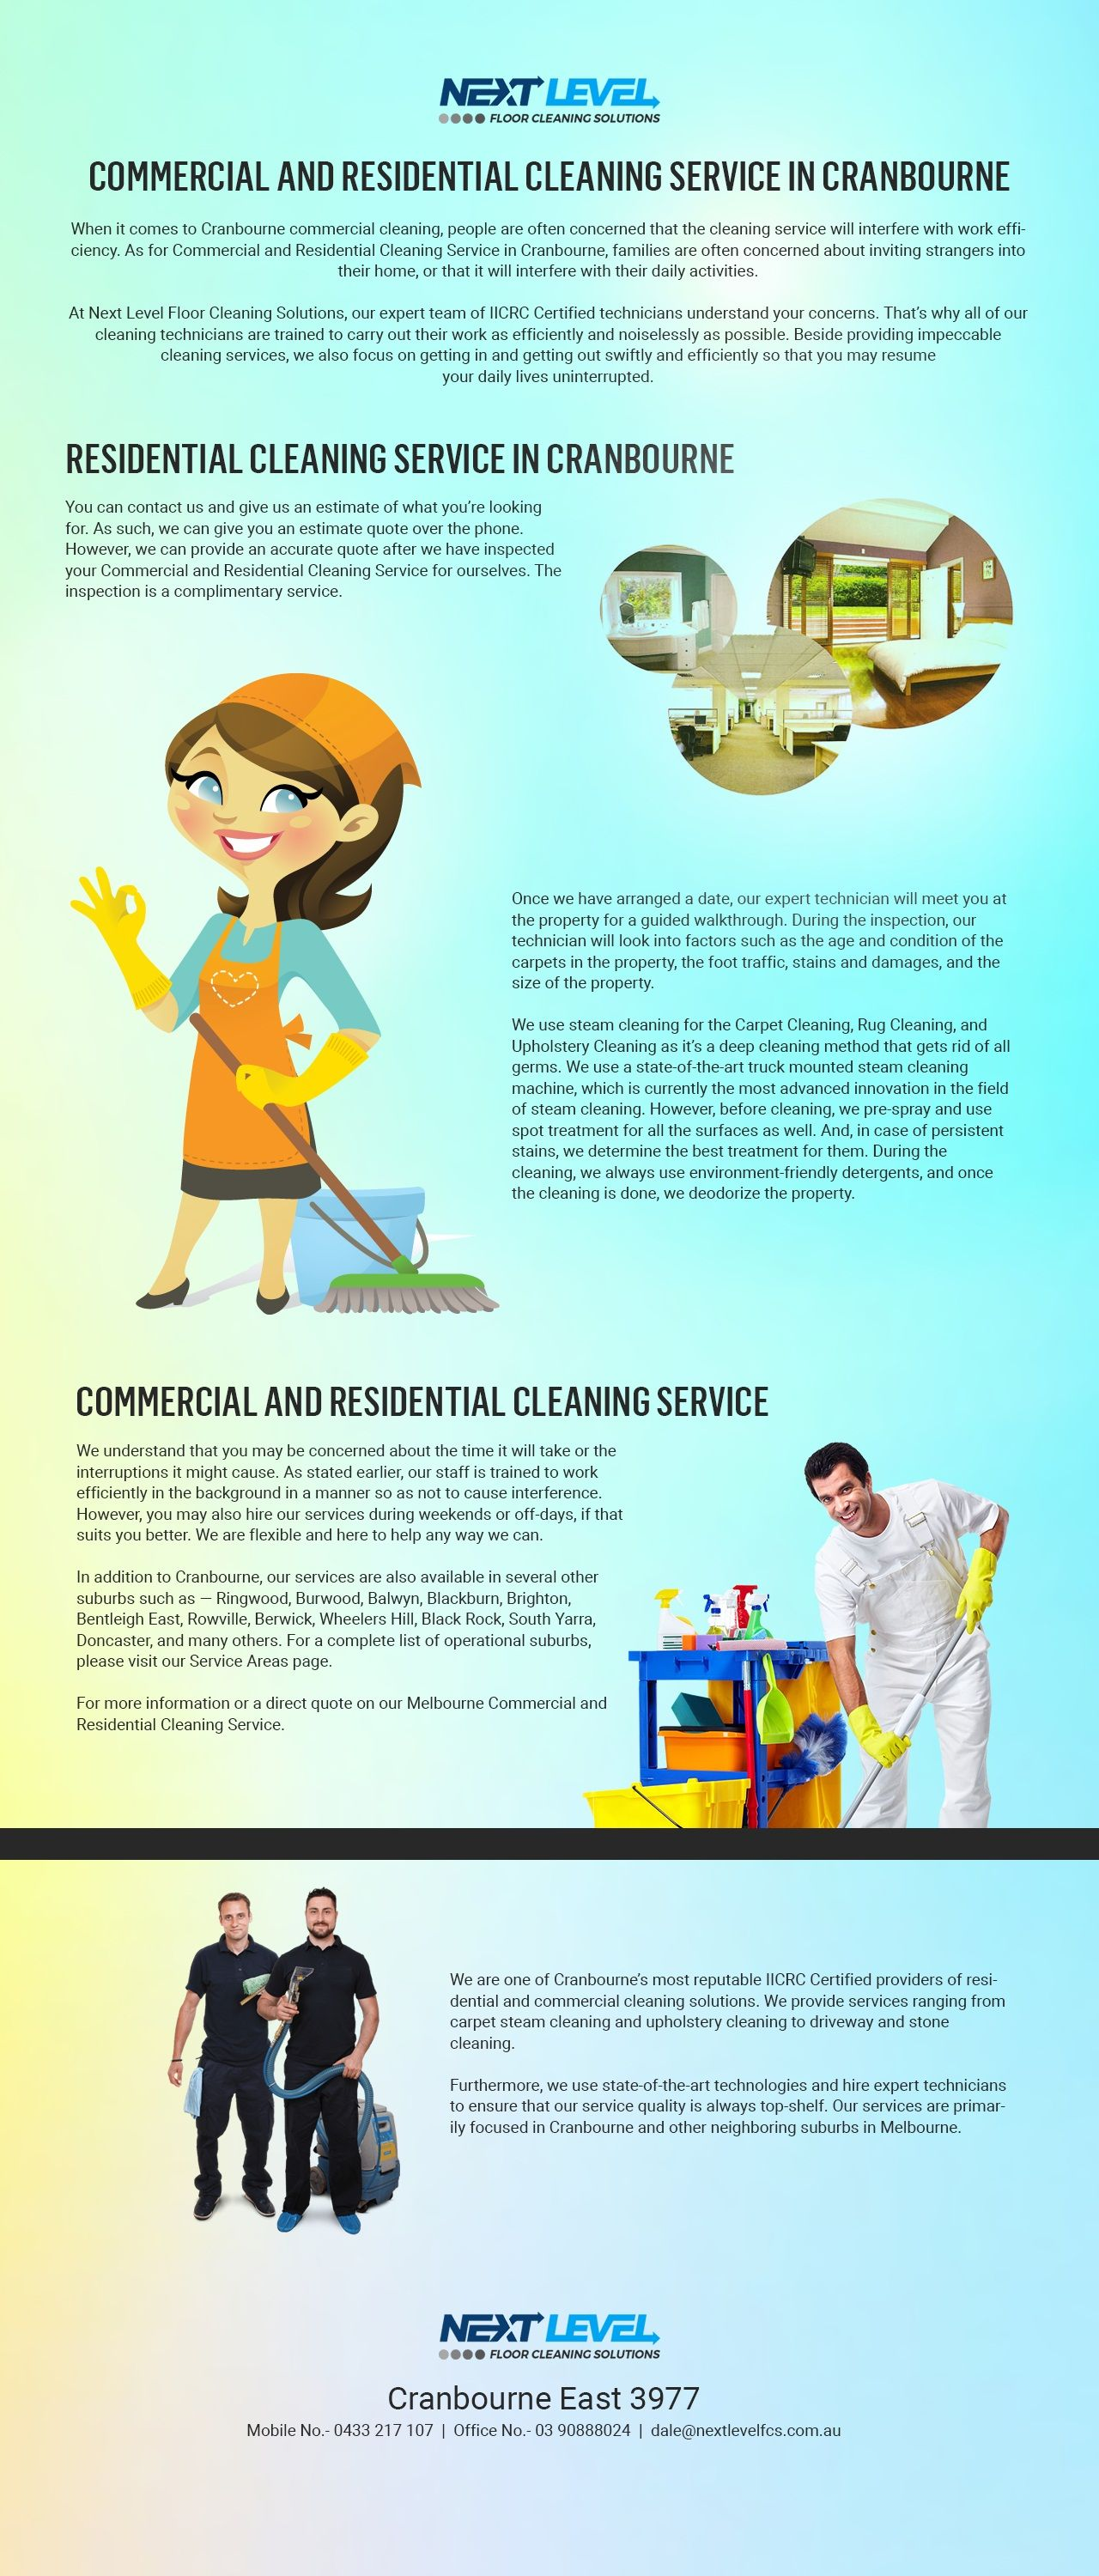 Commercial and Residential Cleaning Service in Cranbourne